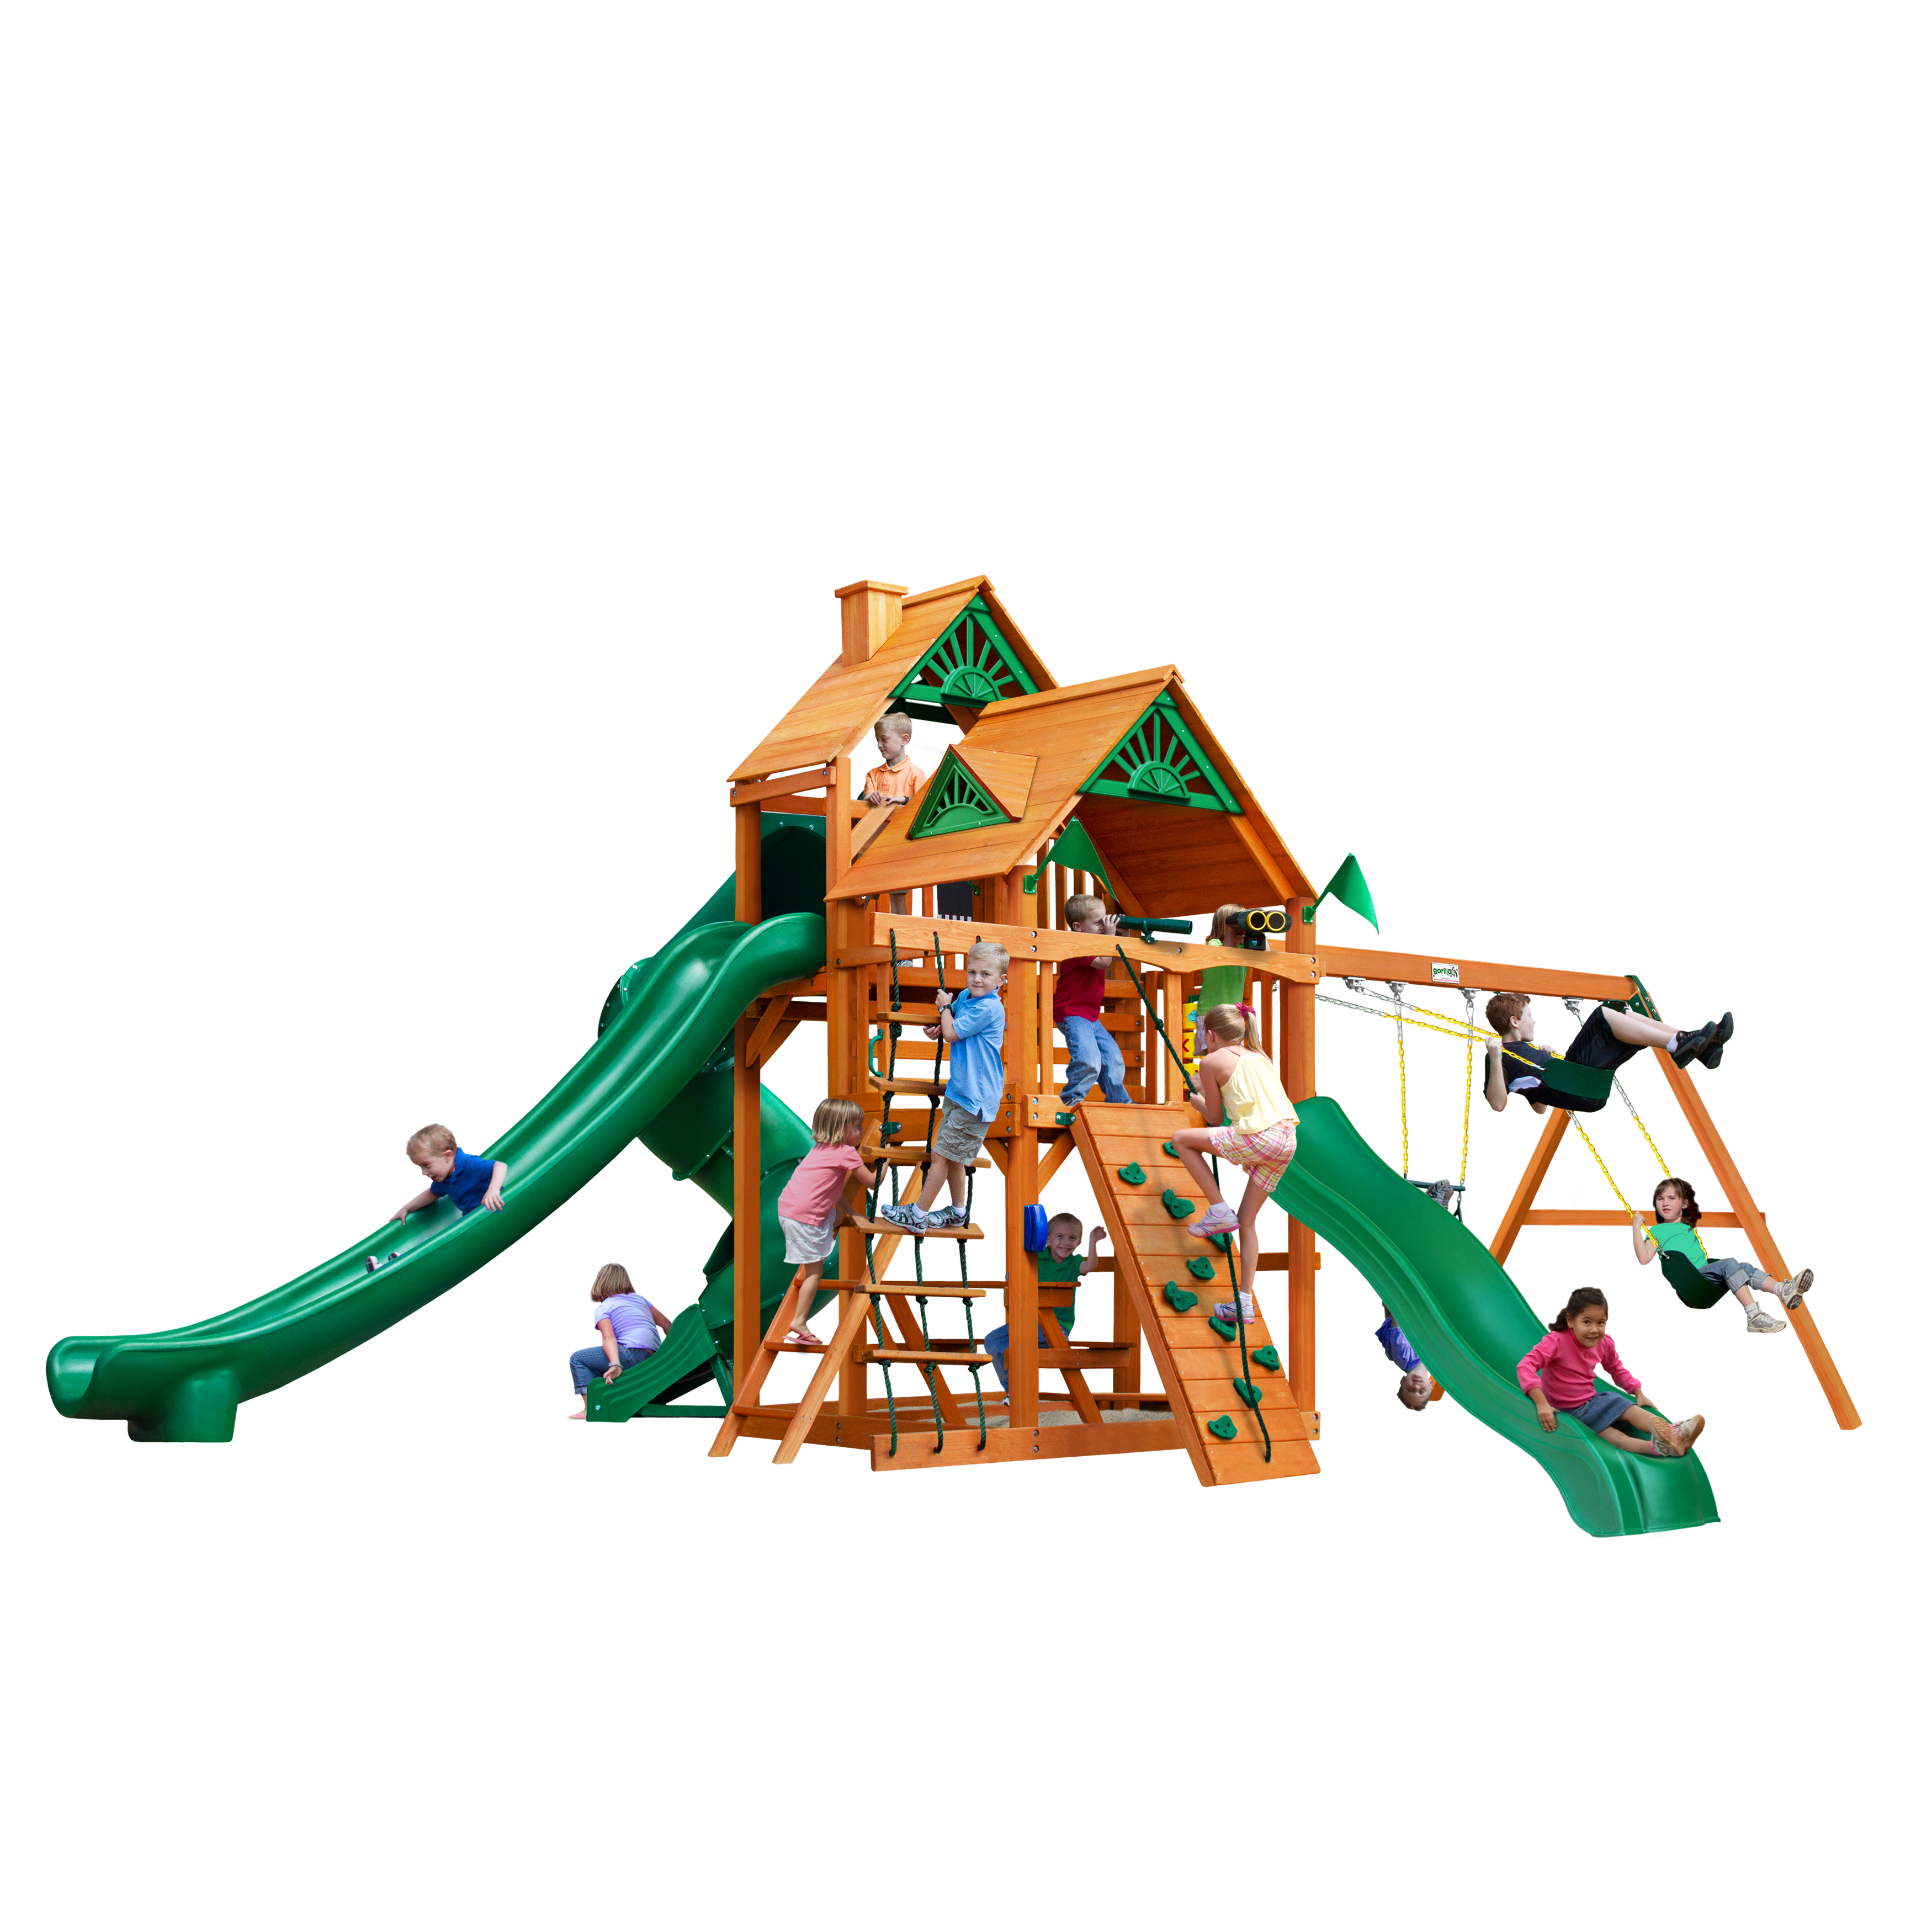 Gorilla Playsets Great Skye II Wooden Swing Set with 3 Slides, Rope Ladder, and 2 Wood Roofs by Gorilla Playsets